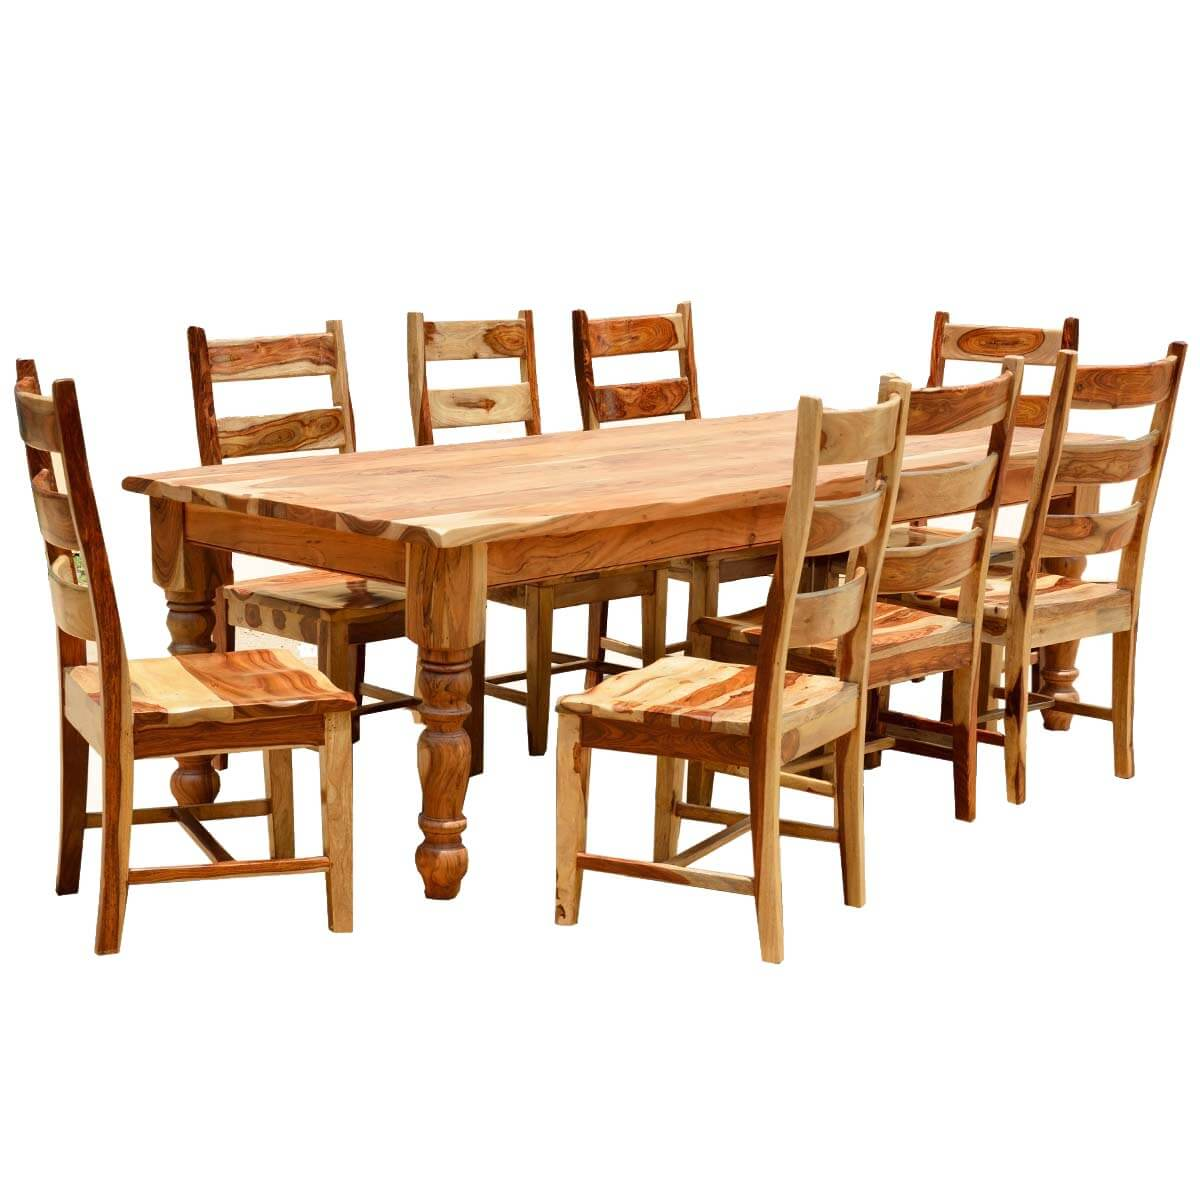 Rustic solid wood farmhouse dining room table chair set for Farmhouse dining room table